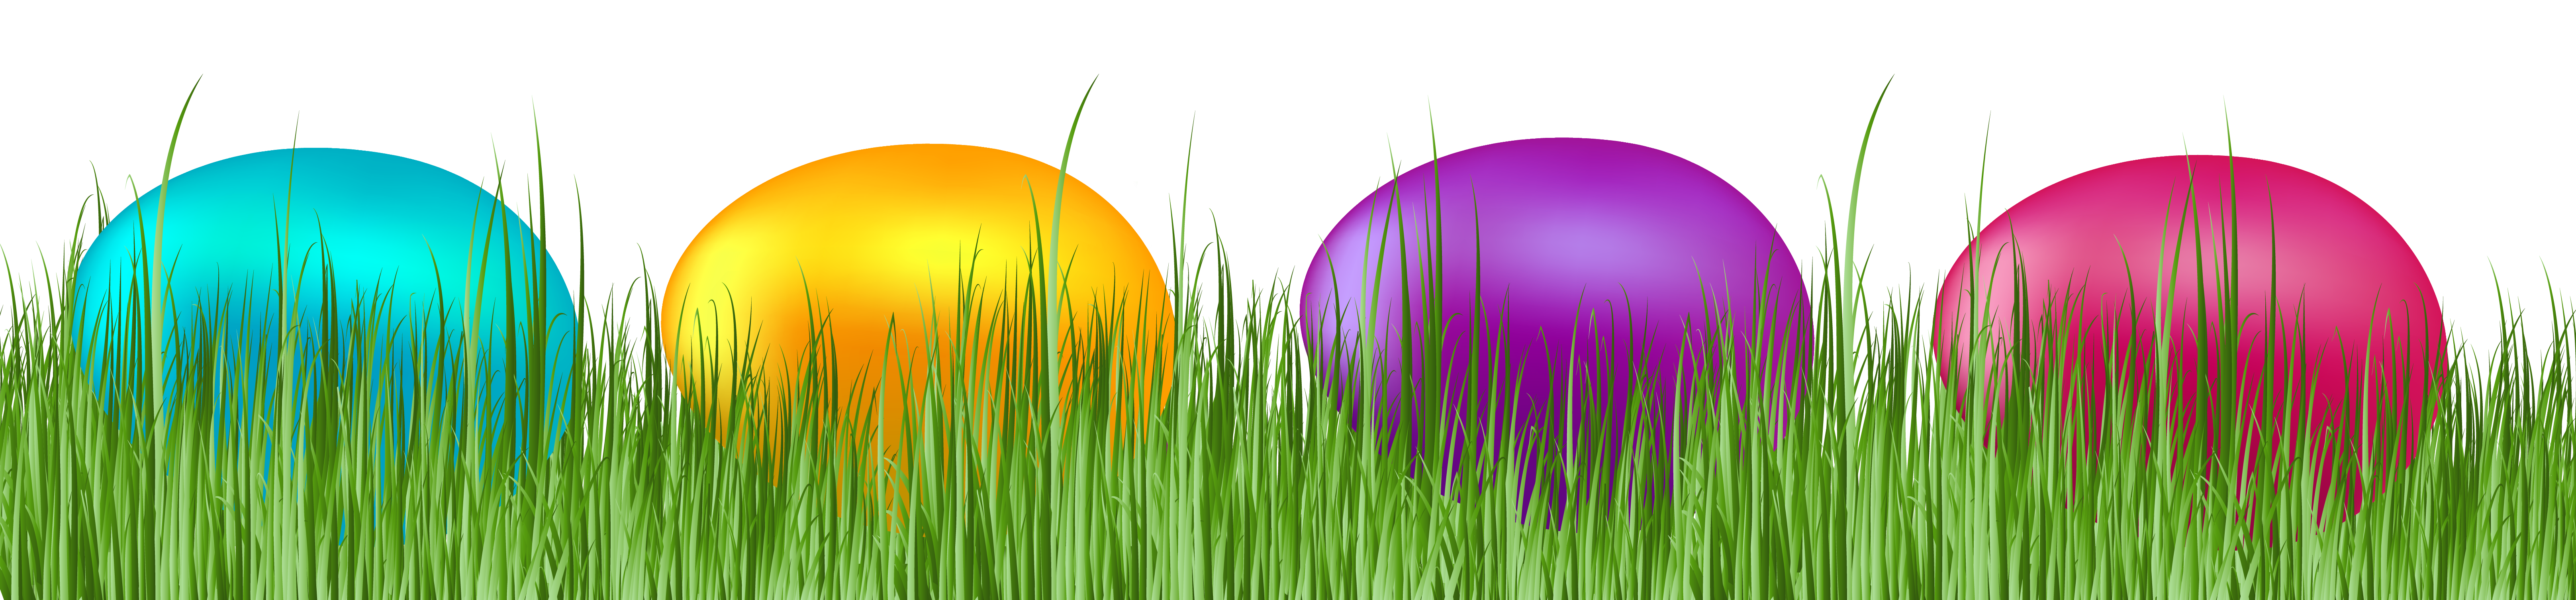 Easter egg clip art border banner royalty free stock Grass with Easter Eggs Transparent PNG Clip Art Image banner royalty free stock